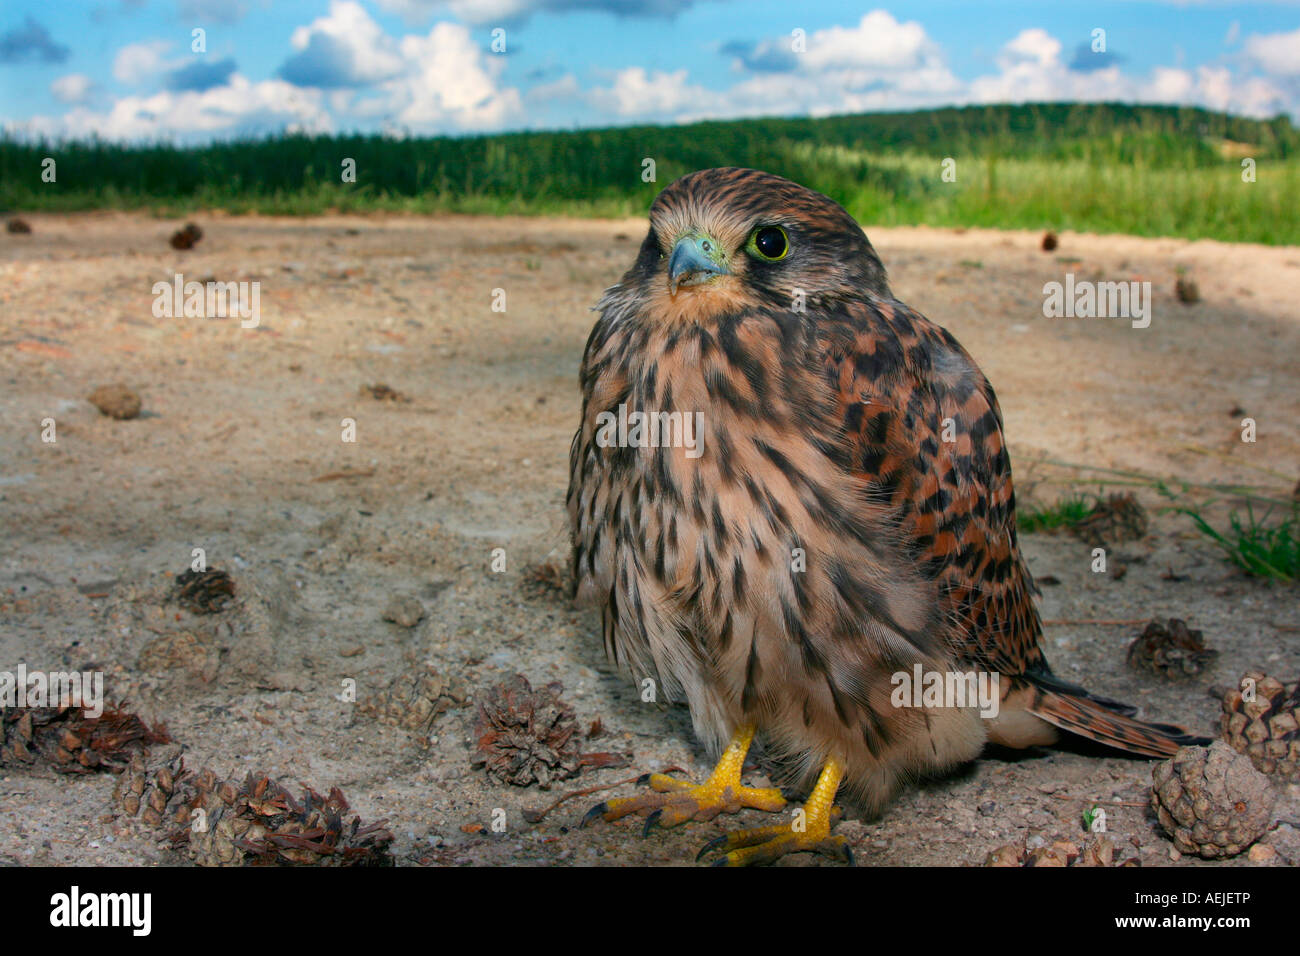 Young kestrel Falco tinnunculus sitting on a forest track - Stock Image